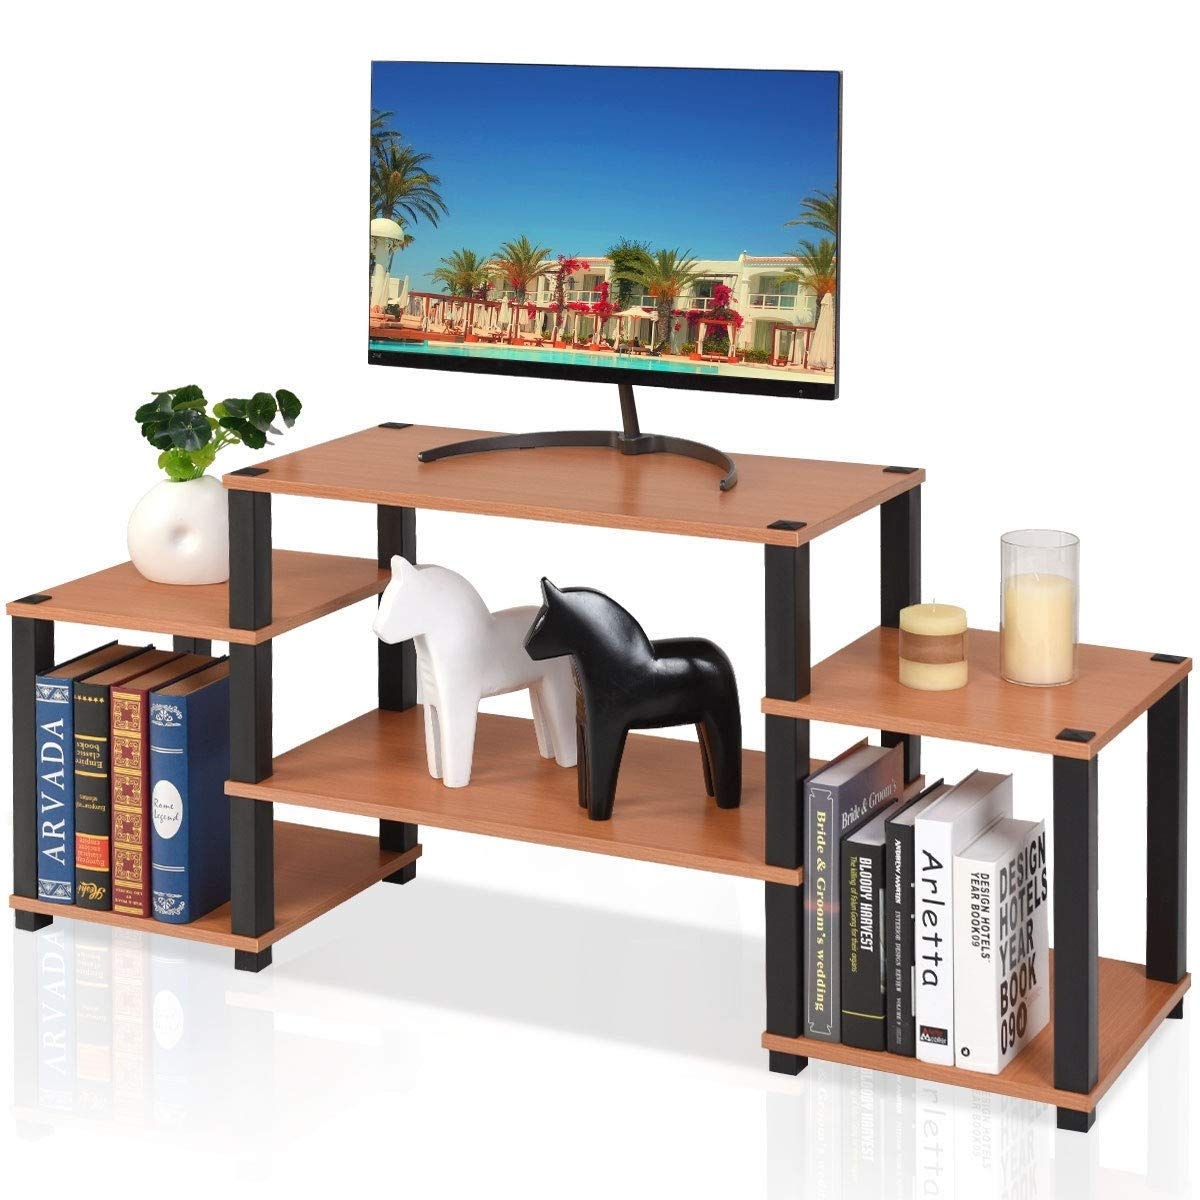 KING77777 Durable and Sturdy Construction 57'' L TV Stand Console Furniture Multi- Function Storage Organizer Cabinet by KING77777 (Image #4)